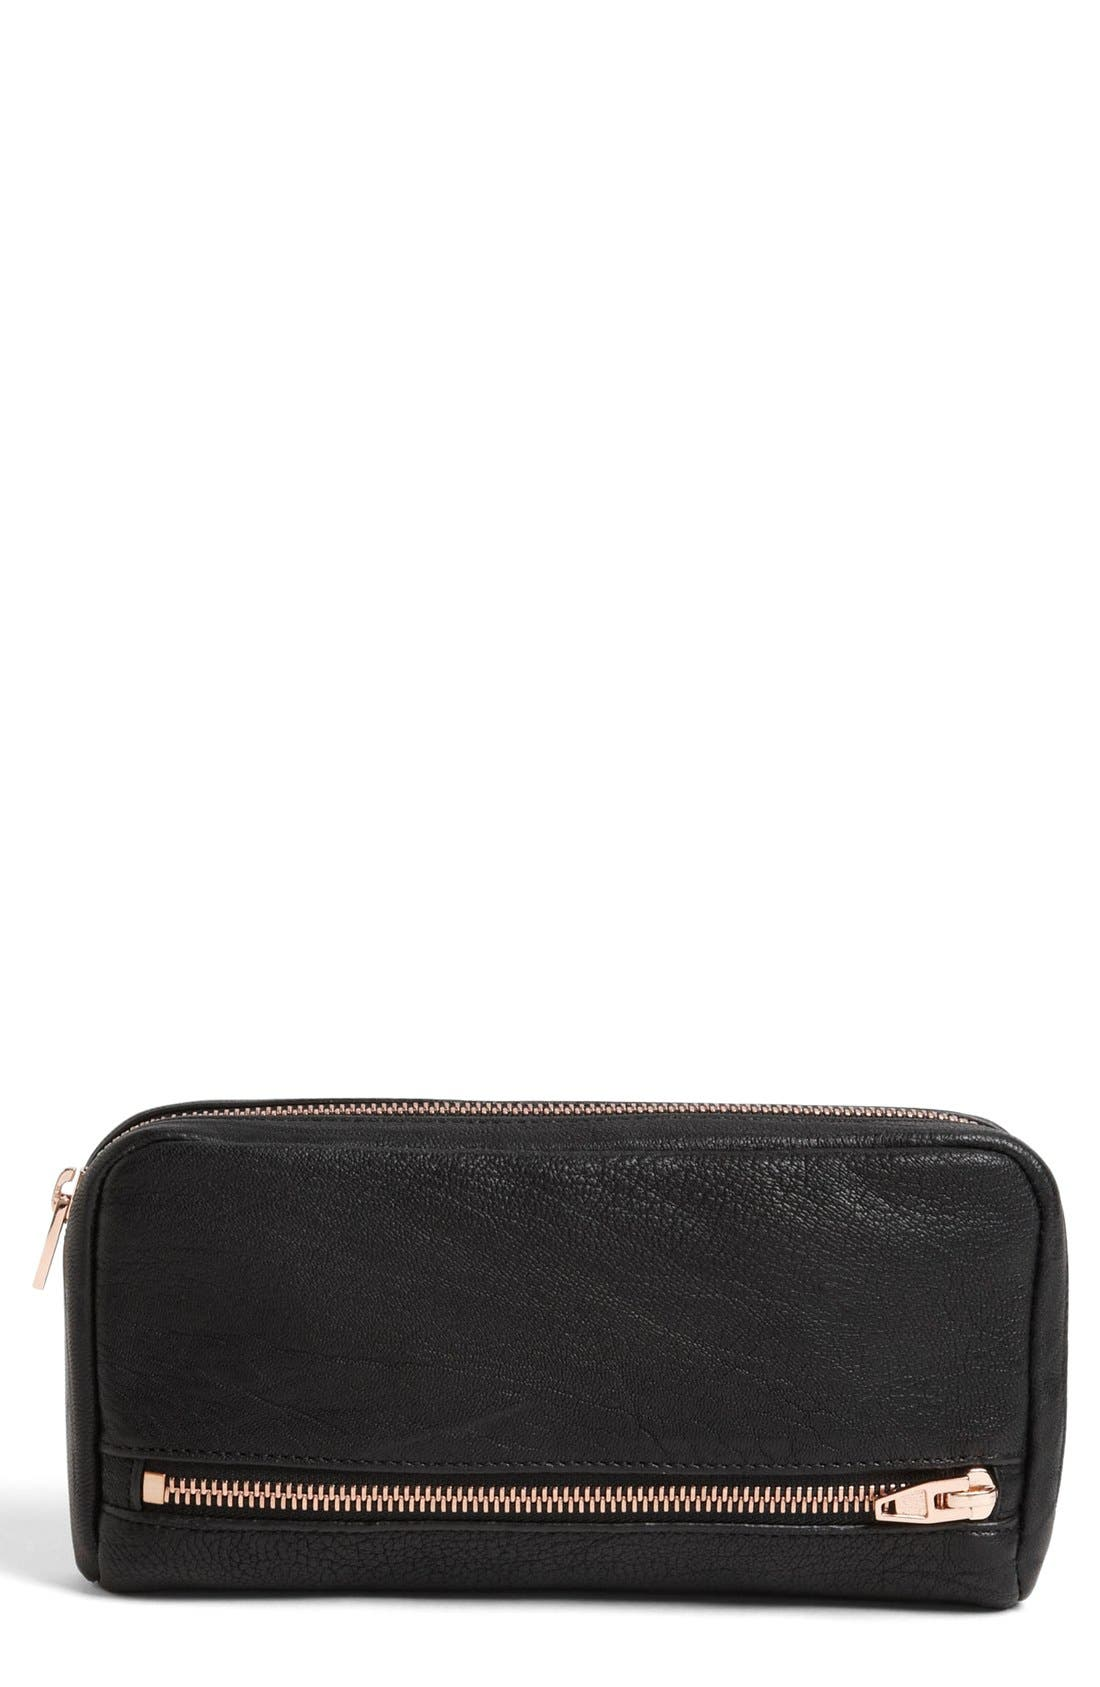 Main Image - Alexander Wang 'Fumo' Zip Top Leather Pouch Wallet